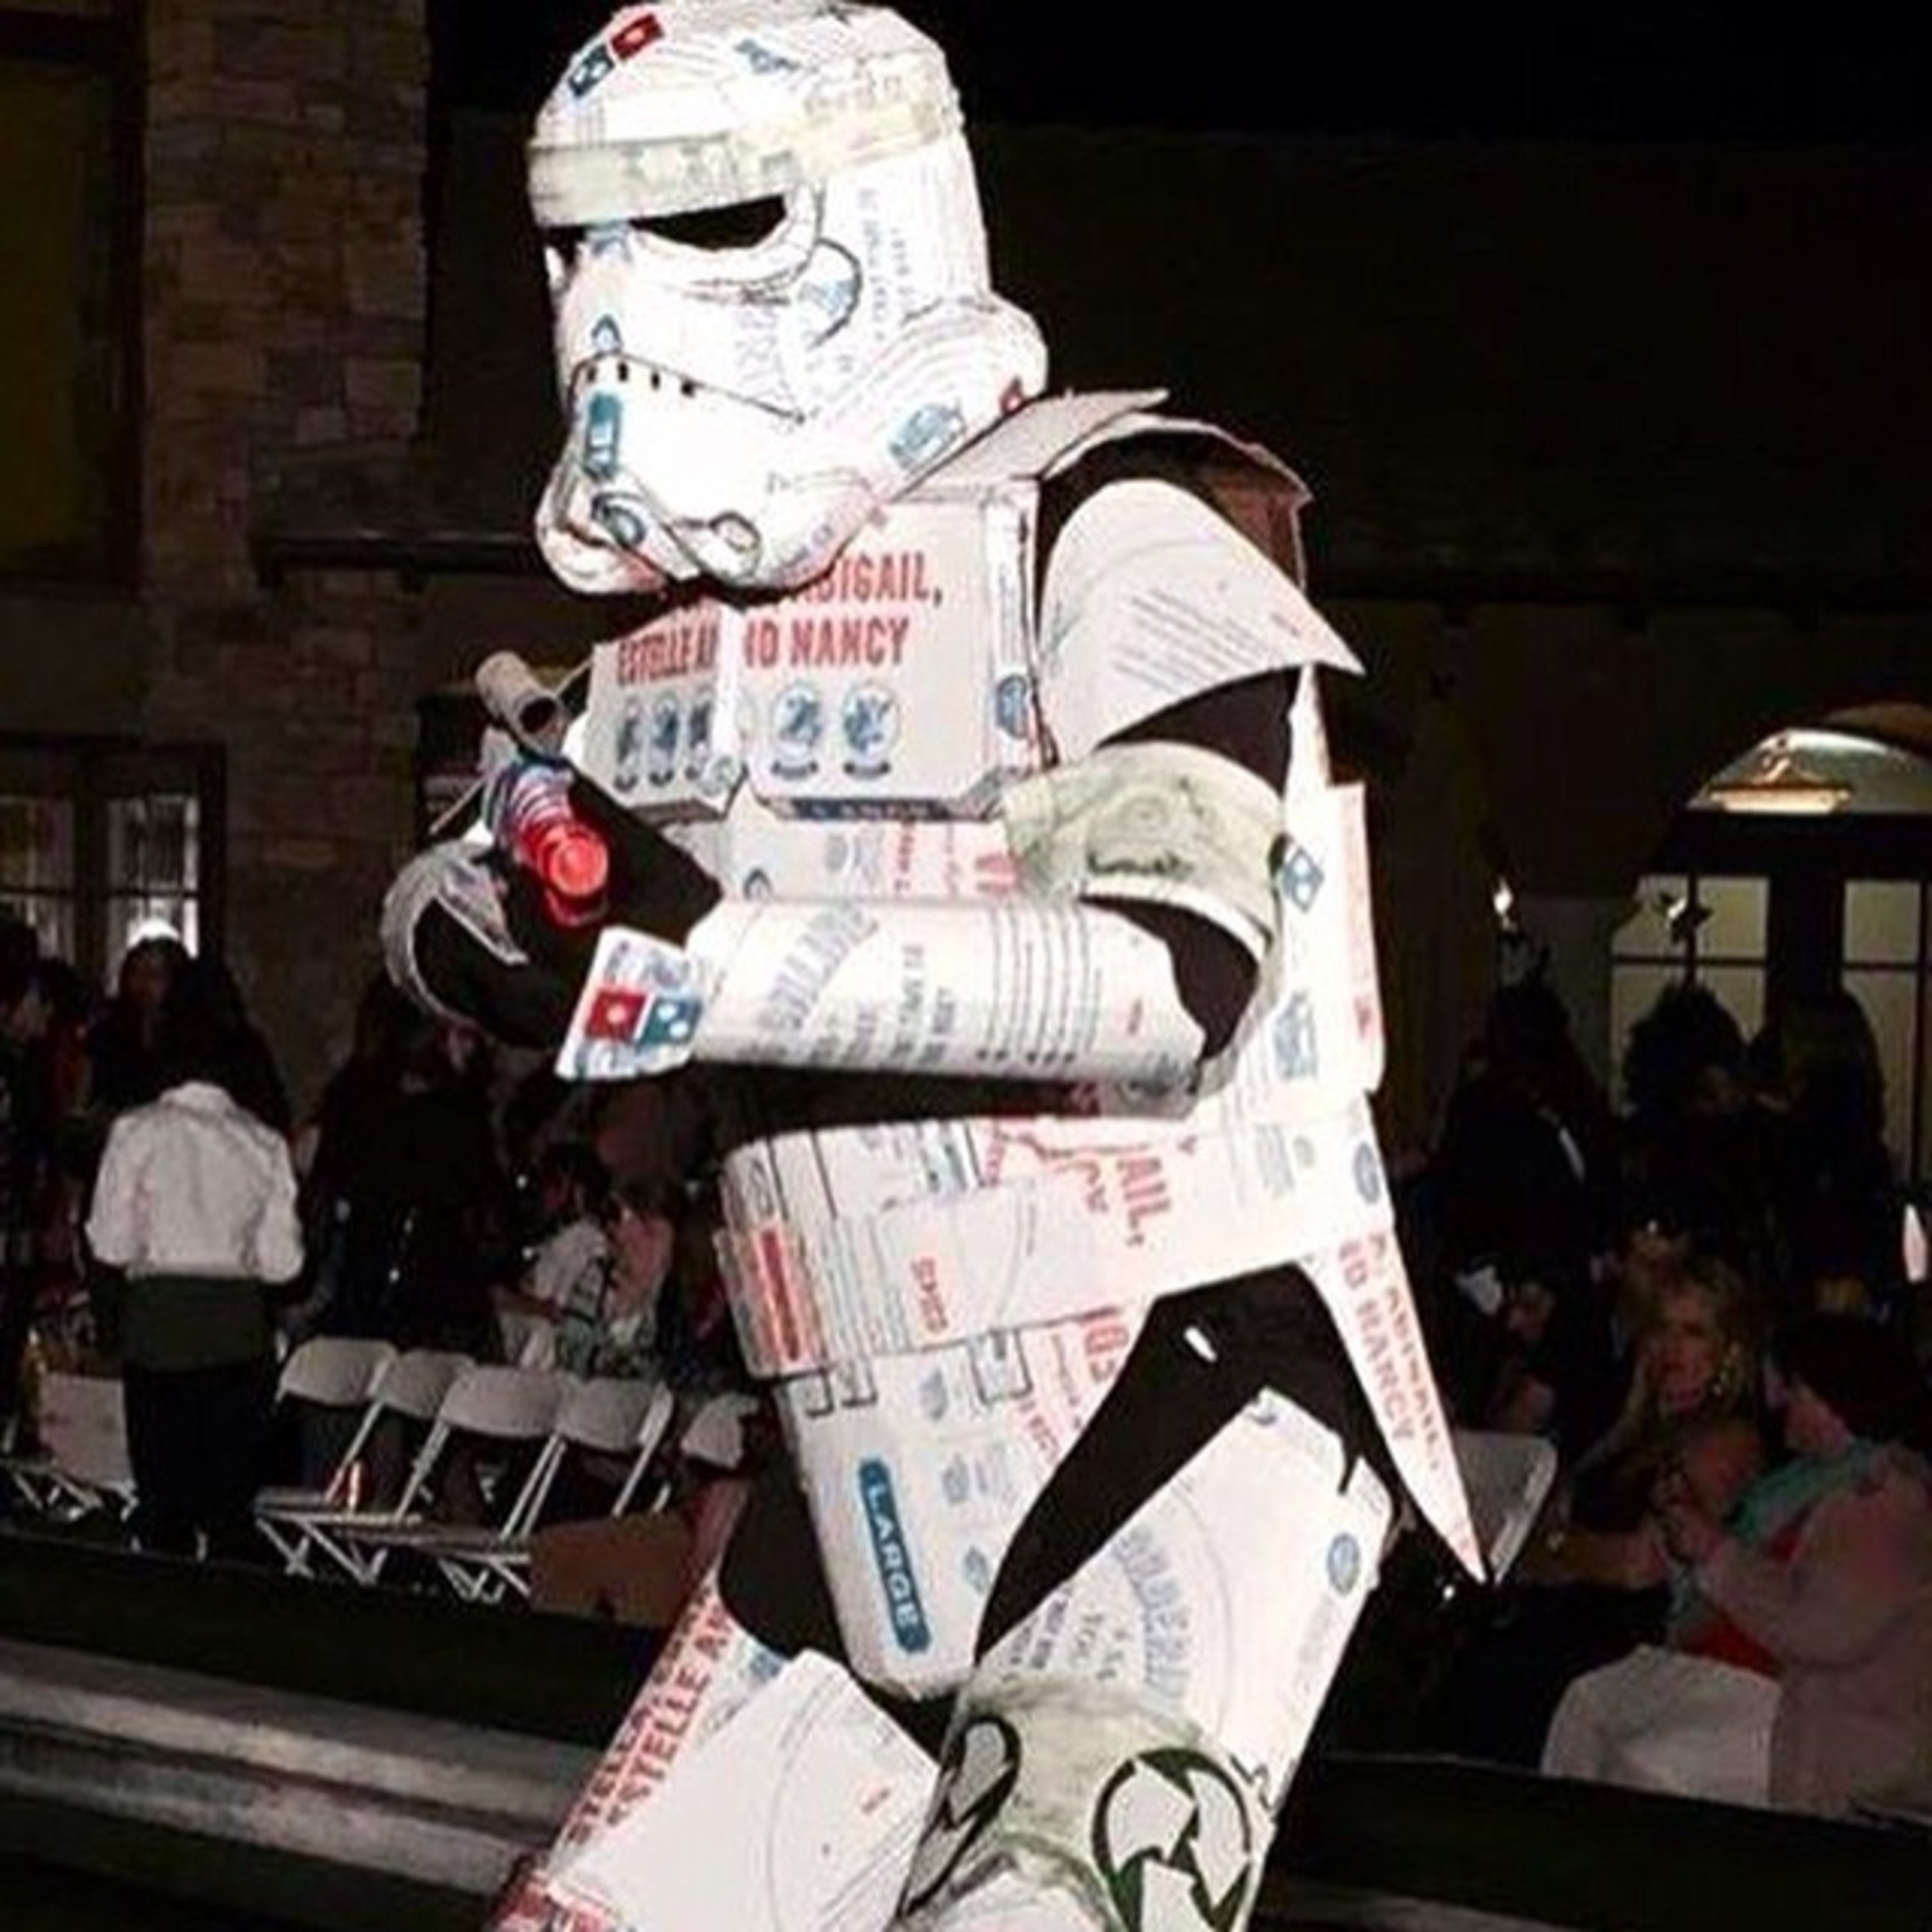 Domino's inspired stormtrooper created by local Los Angeles artist, Philip Figueroa